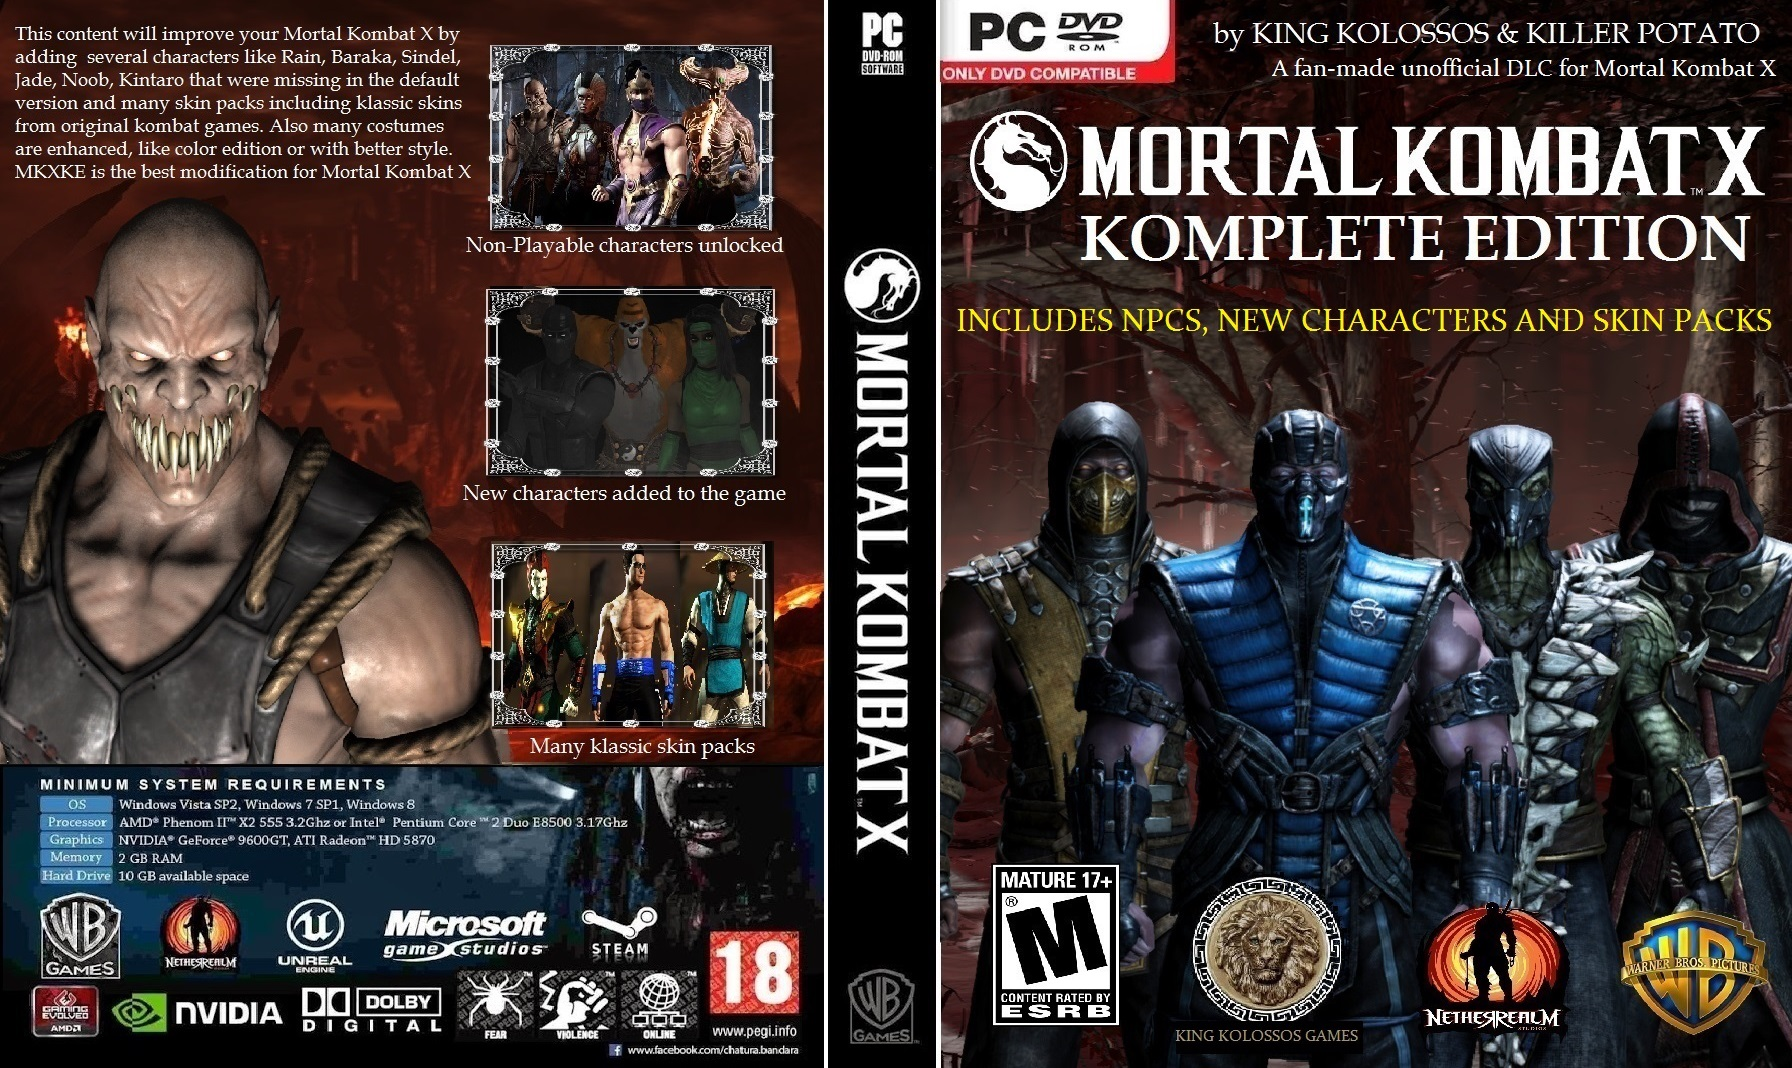 Mortal kombat komplete edition pc patch nude pictures